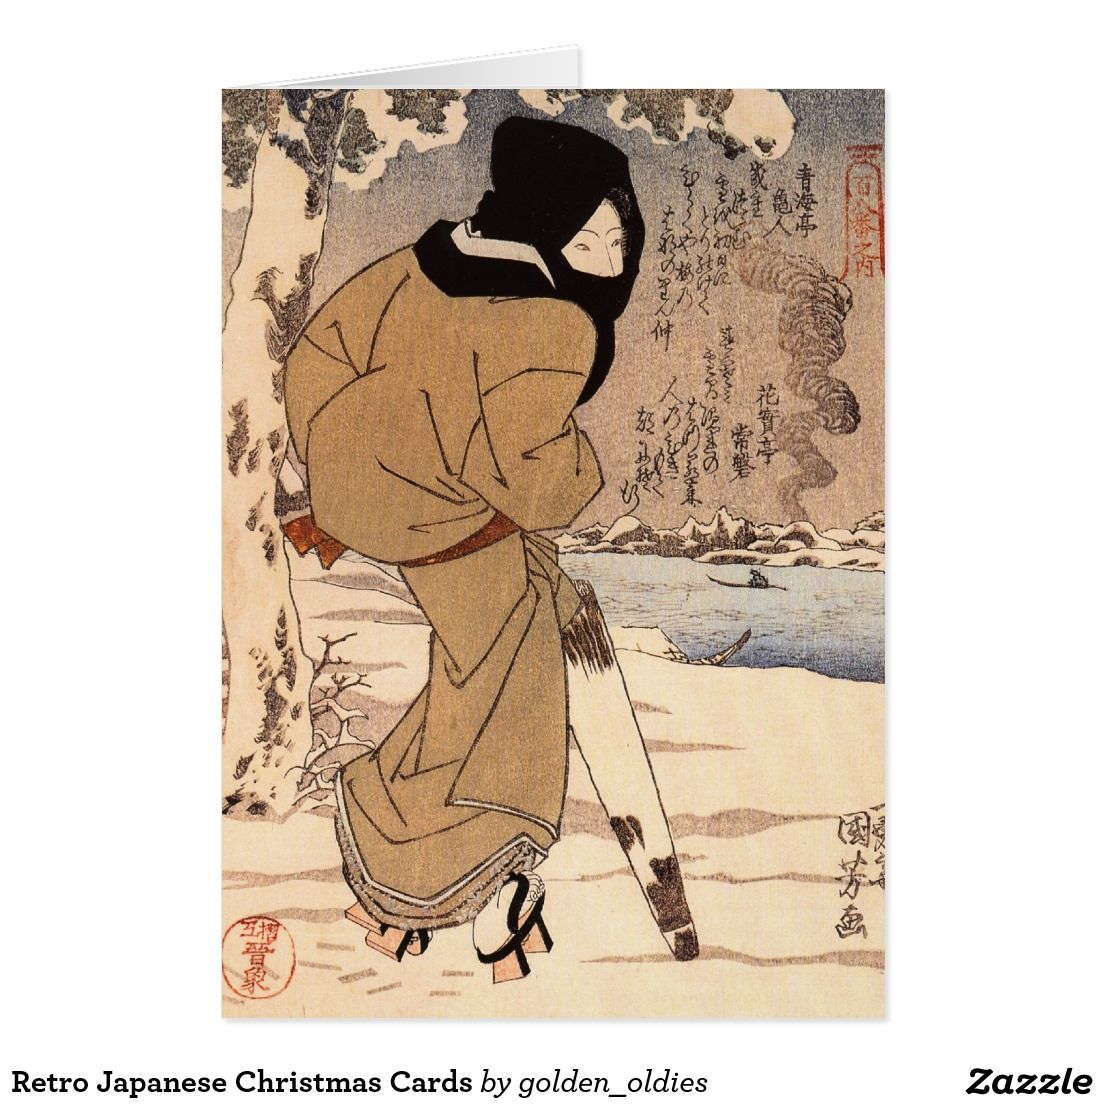 Retro Japanese Christmas Cards | Christmas | Pinterest | Japanese ...